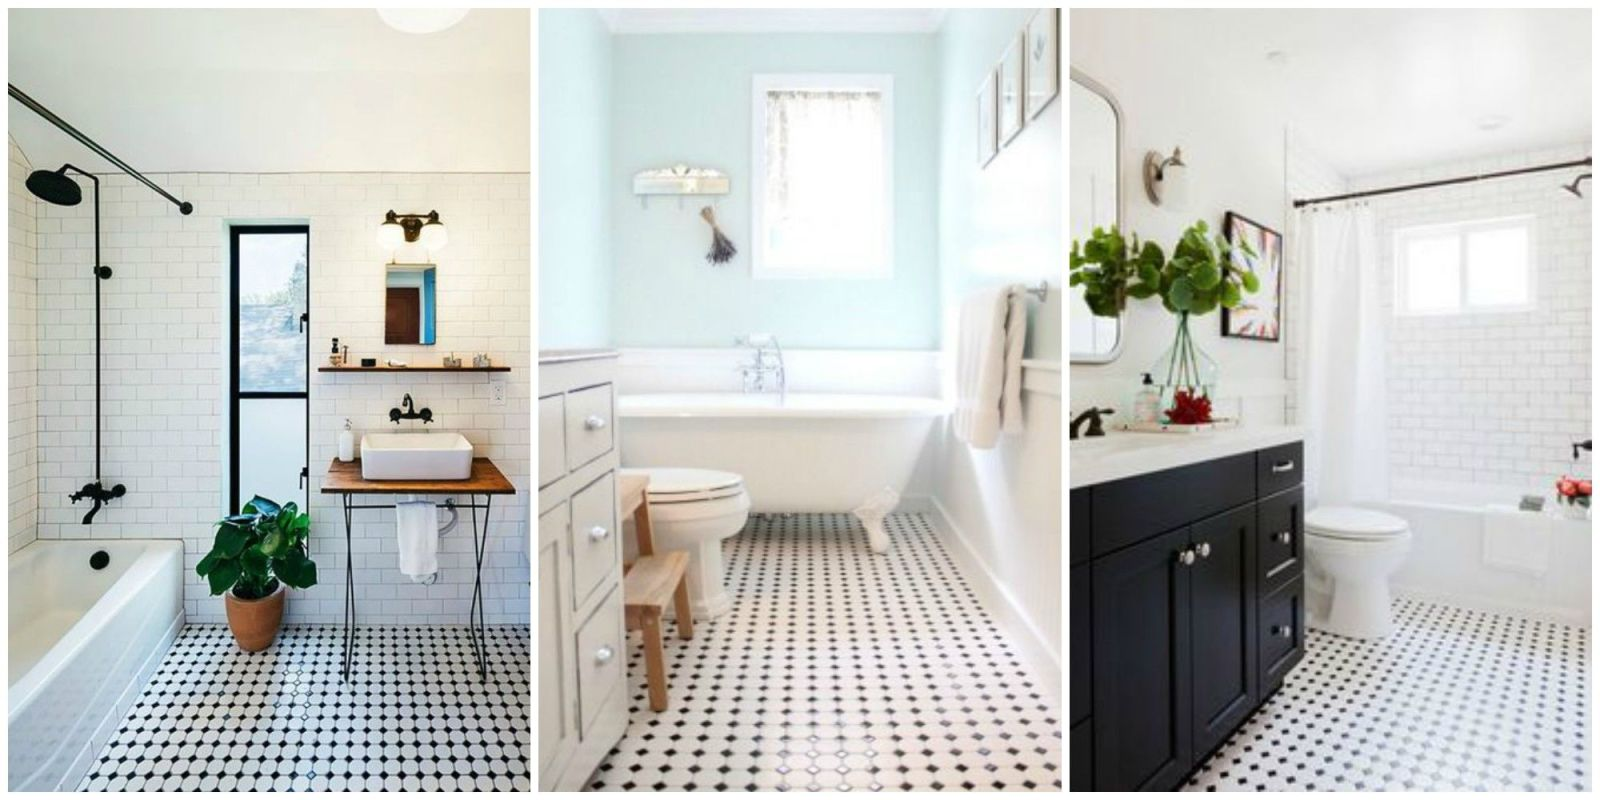 Classic black and white tiled bathroom floors are making a for Bathroom decor inspiration